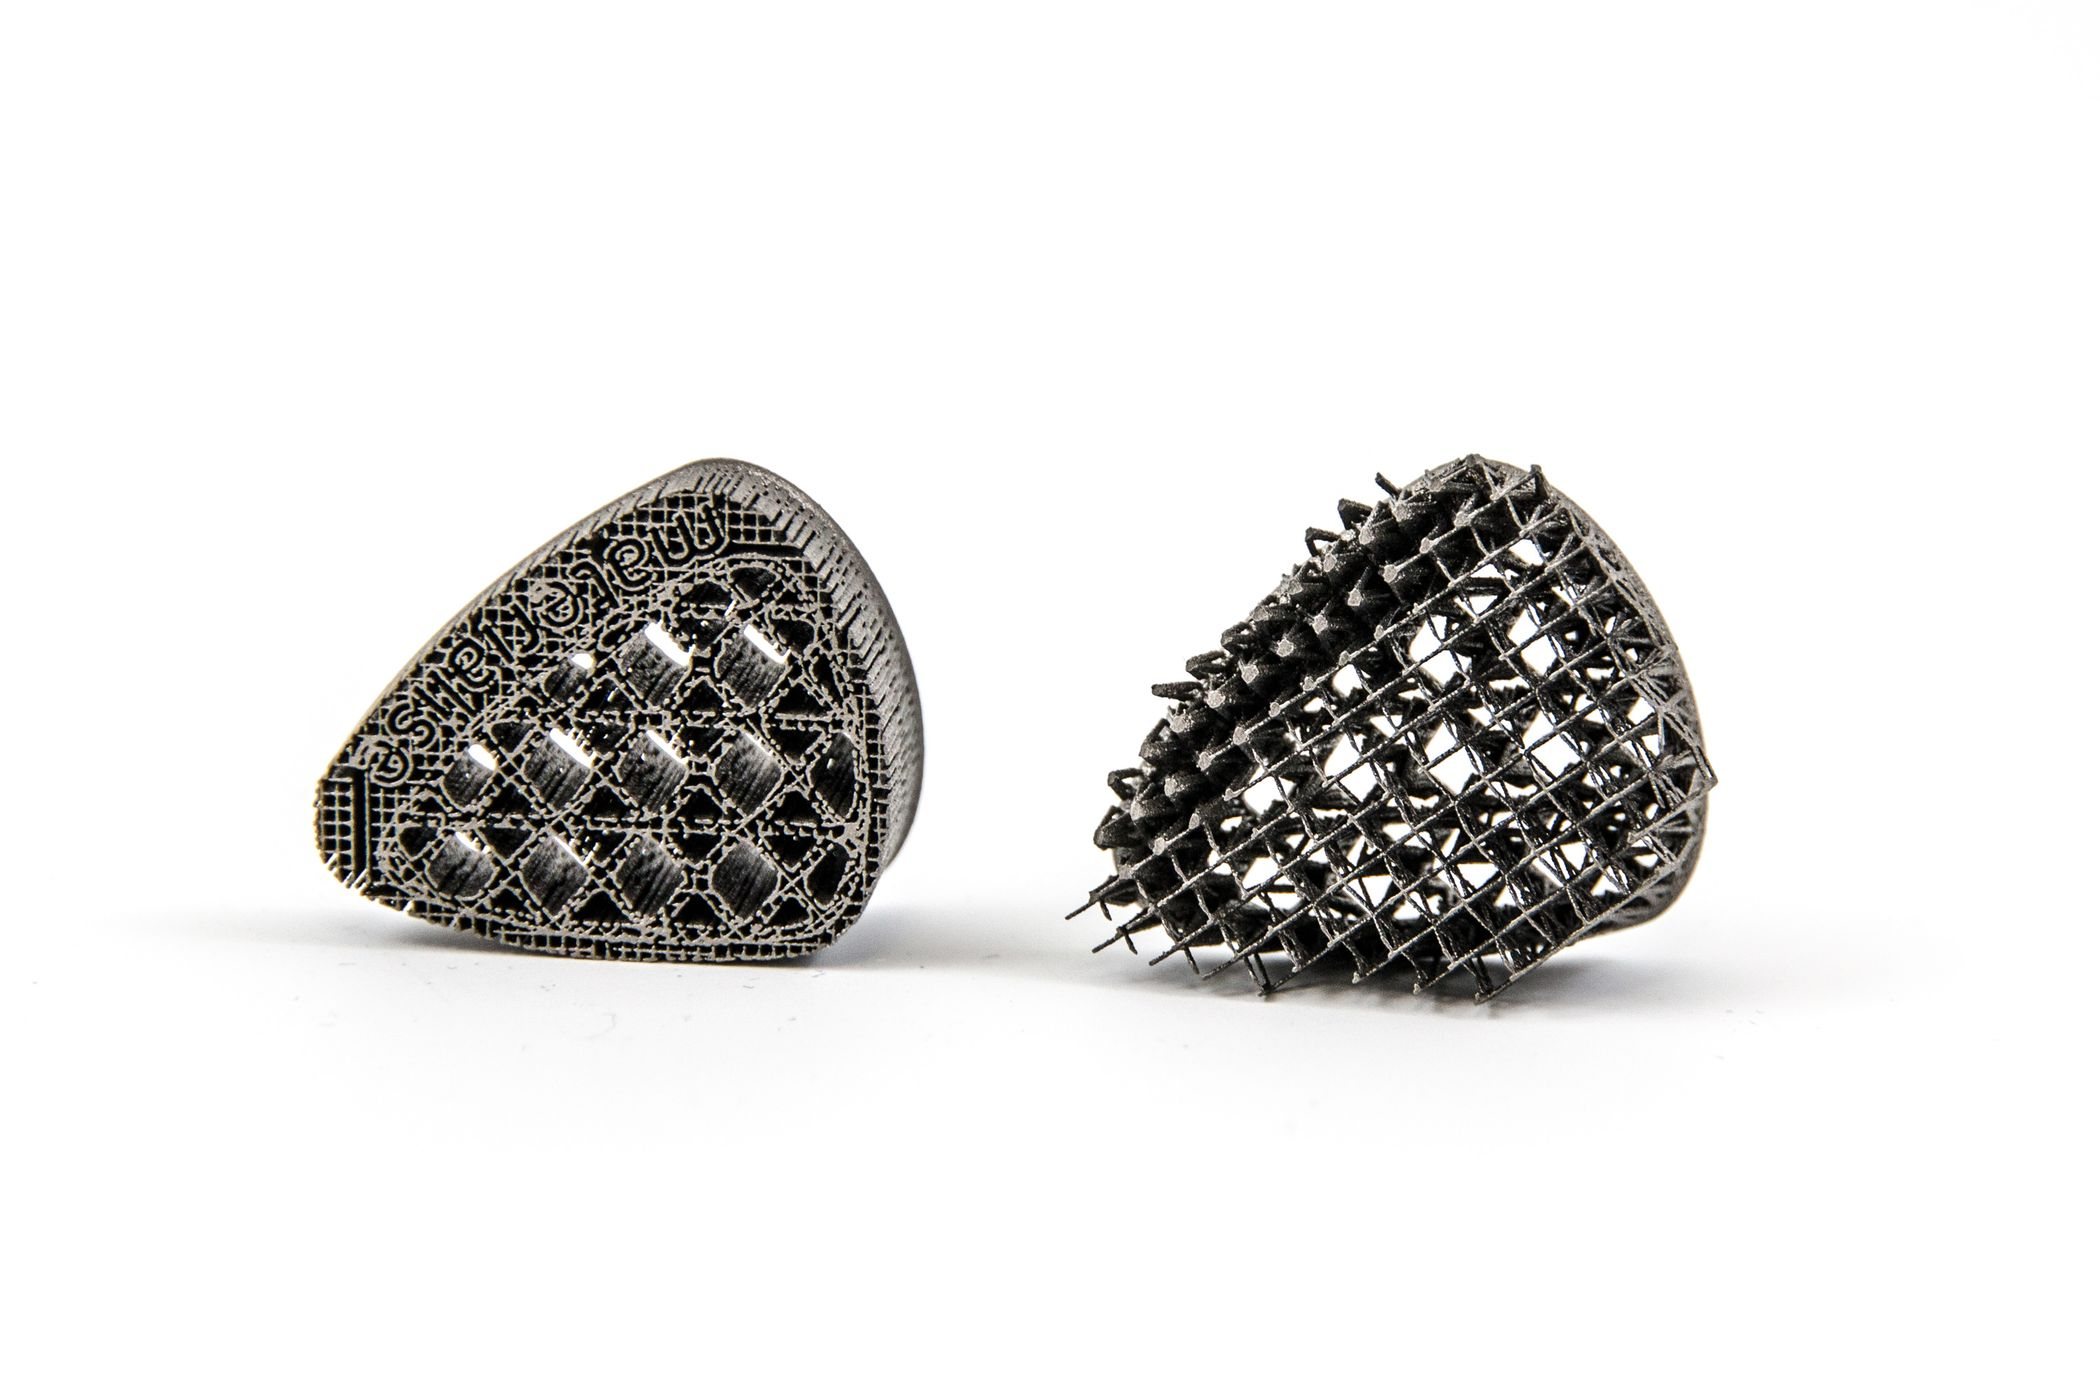 Small titanium items 3D printed at Materialise